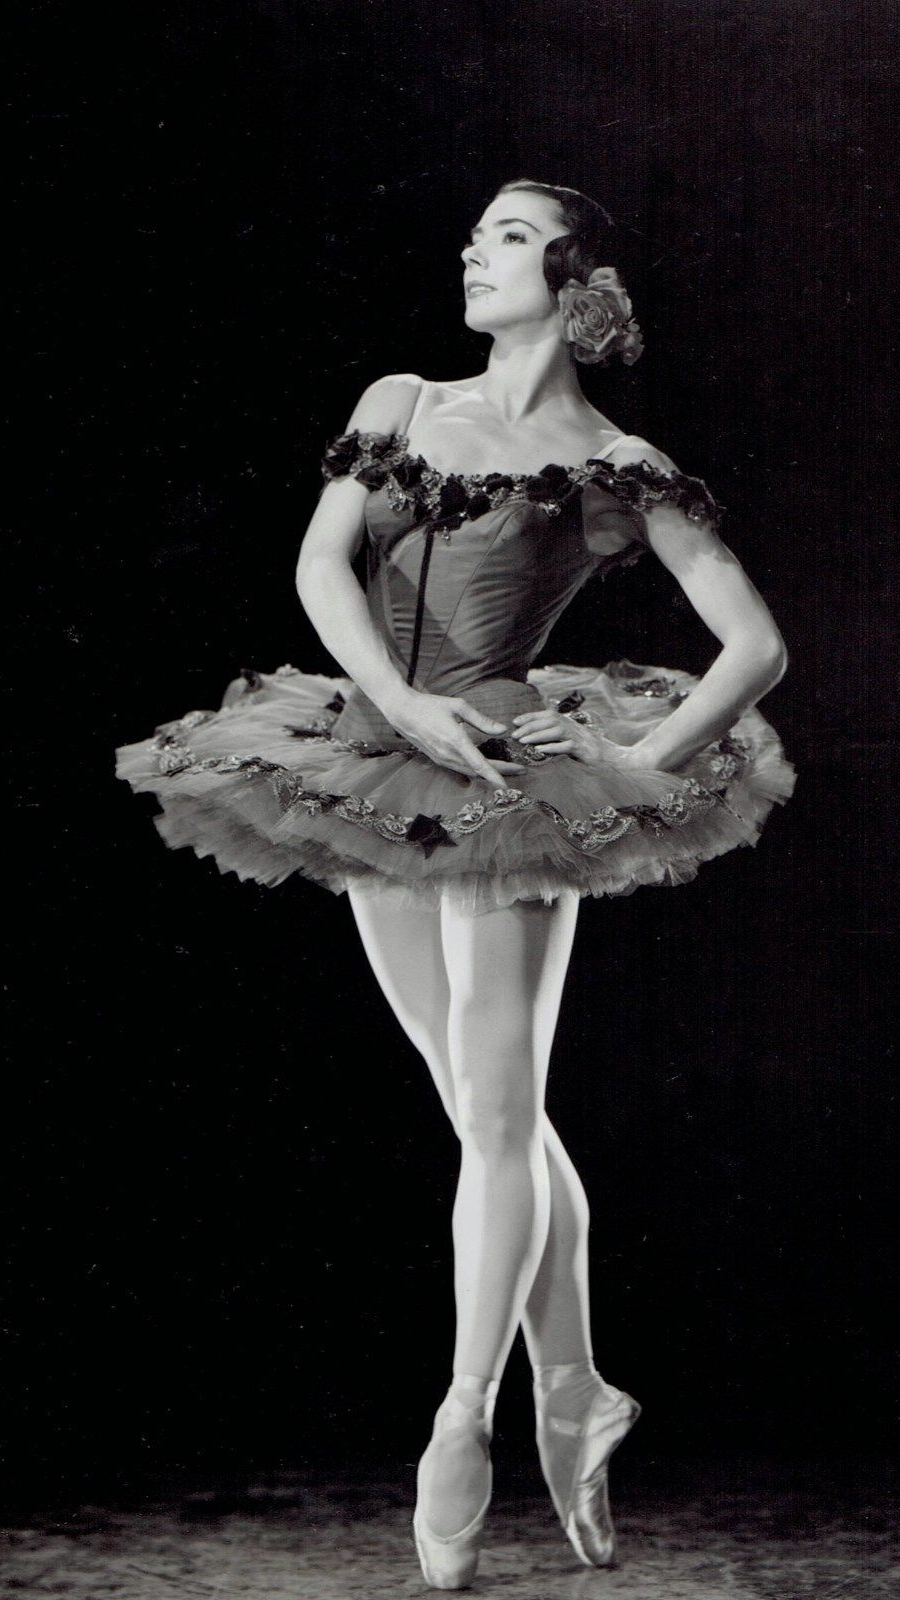 Get inspired with these vintage Halloween costume ideas. How about a vintage Russian ballerina?